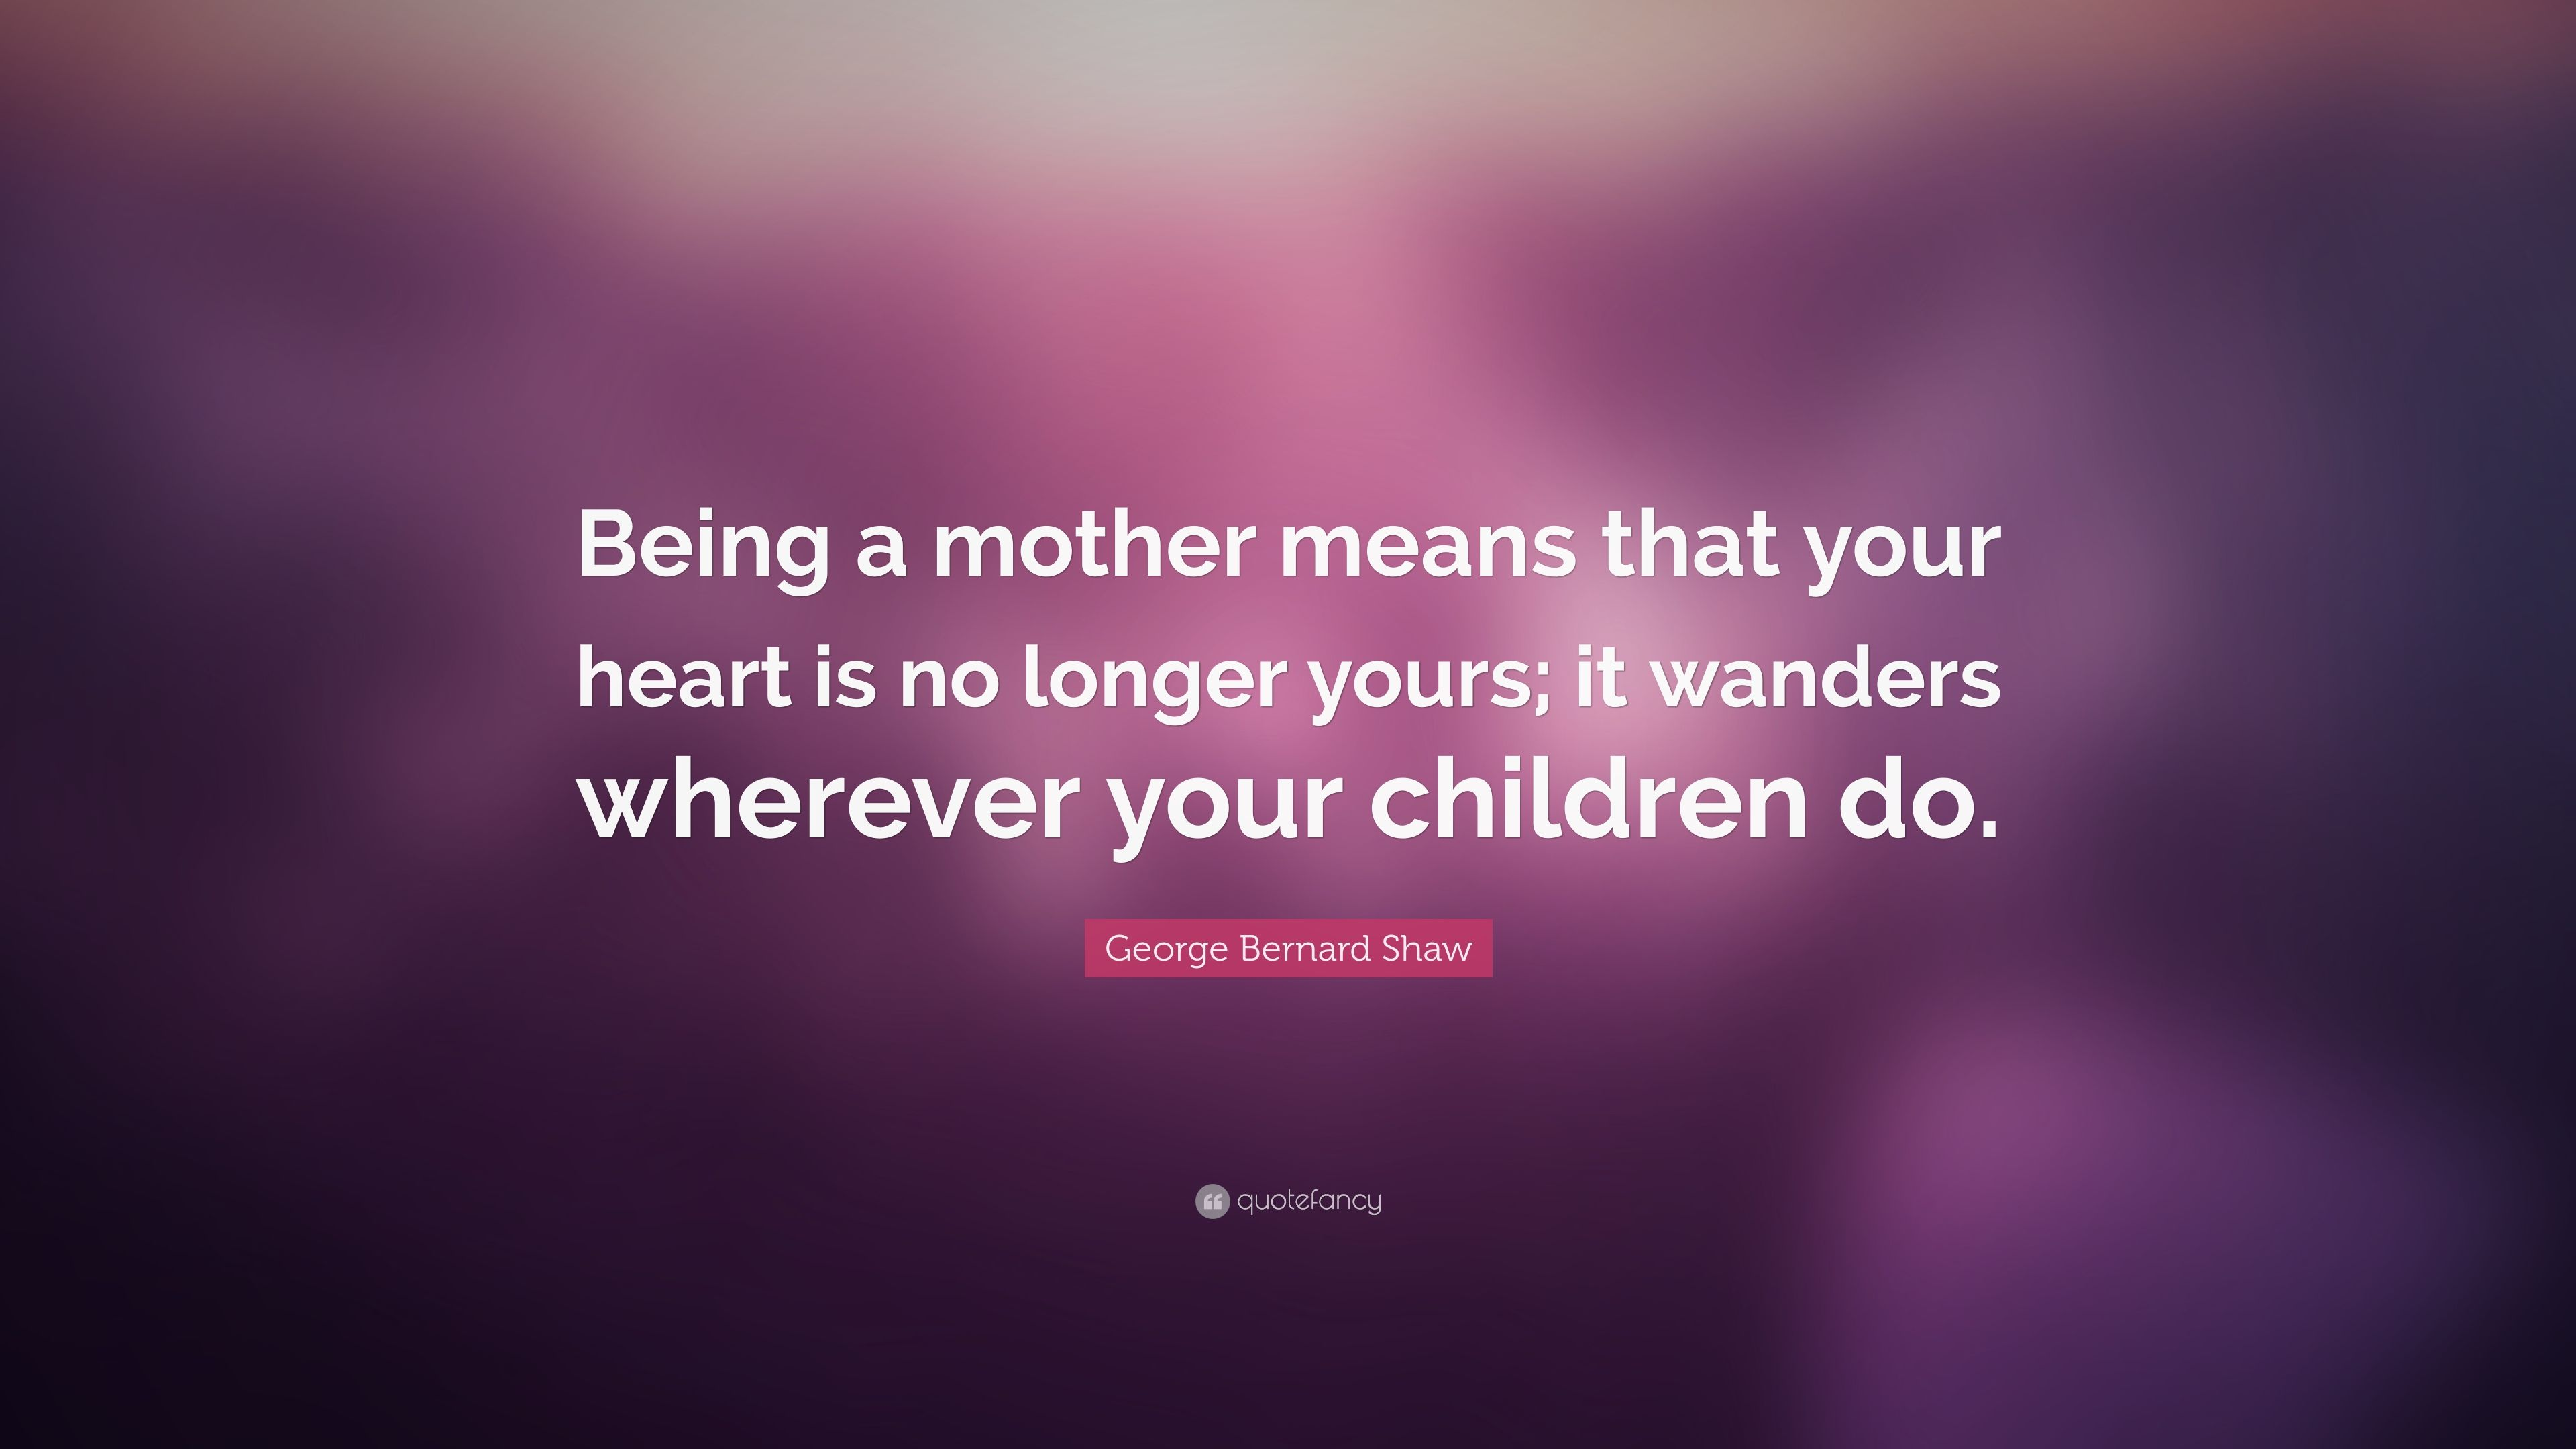 George Bernard Shaw Quote Being A Mother Means That Your Heart Is